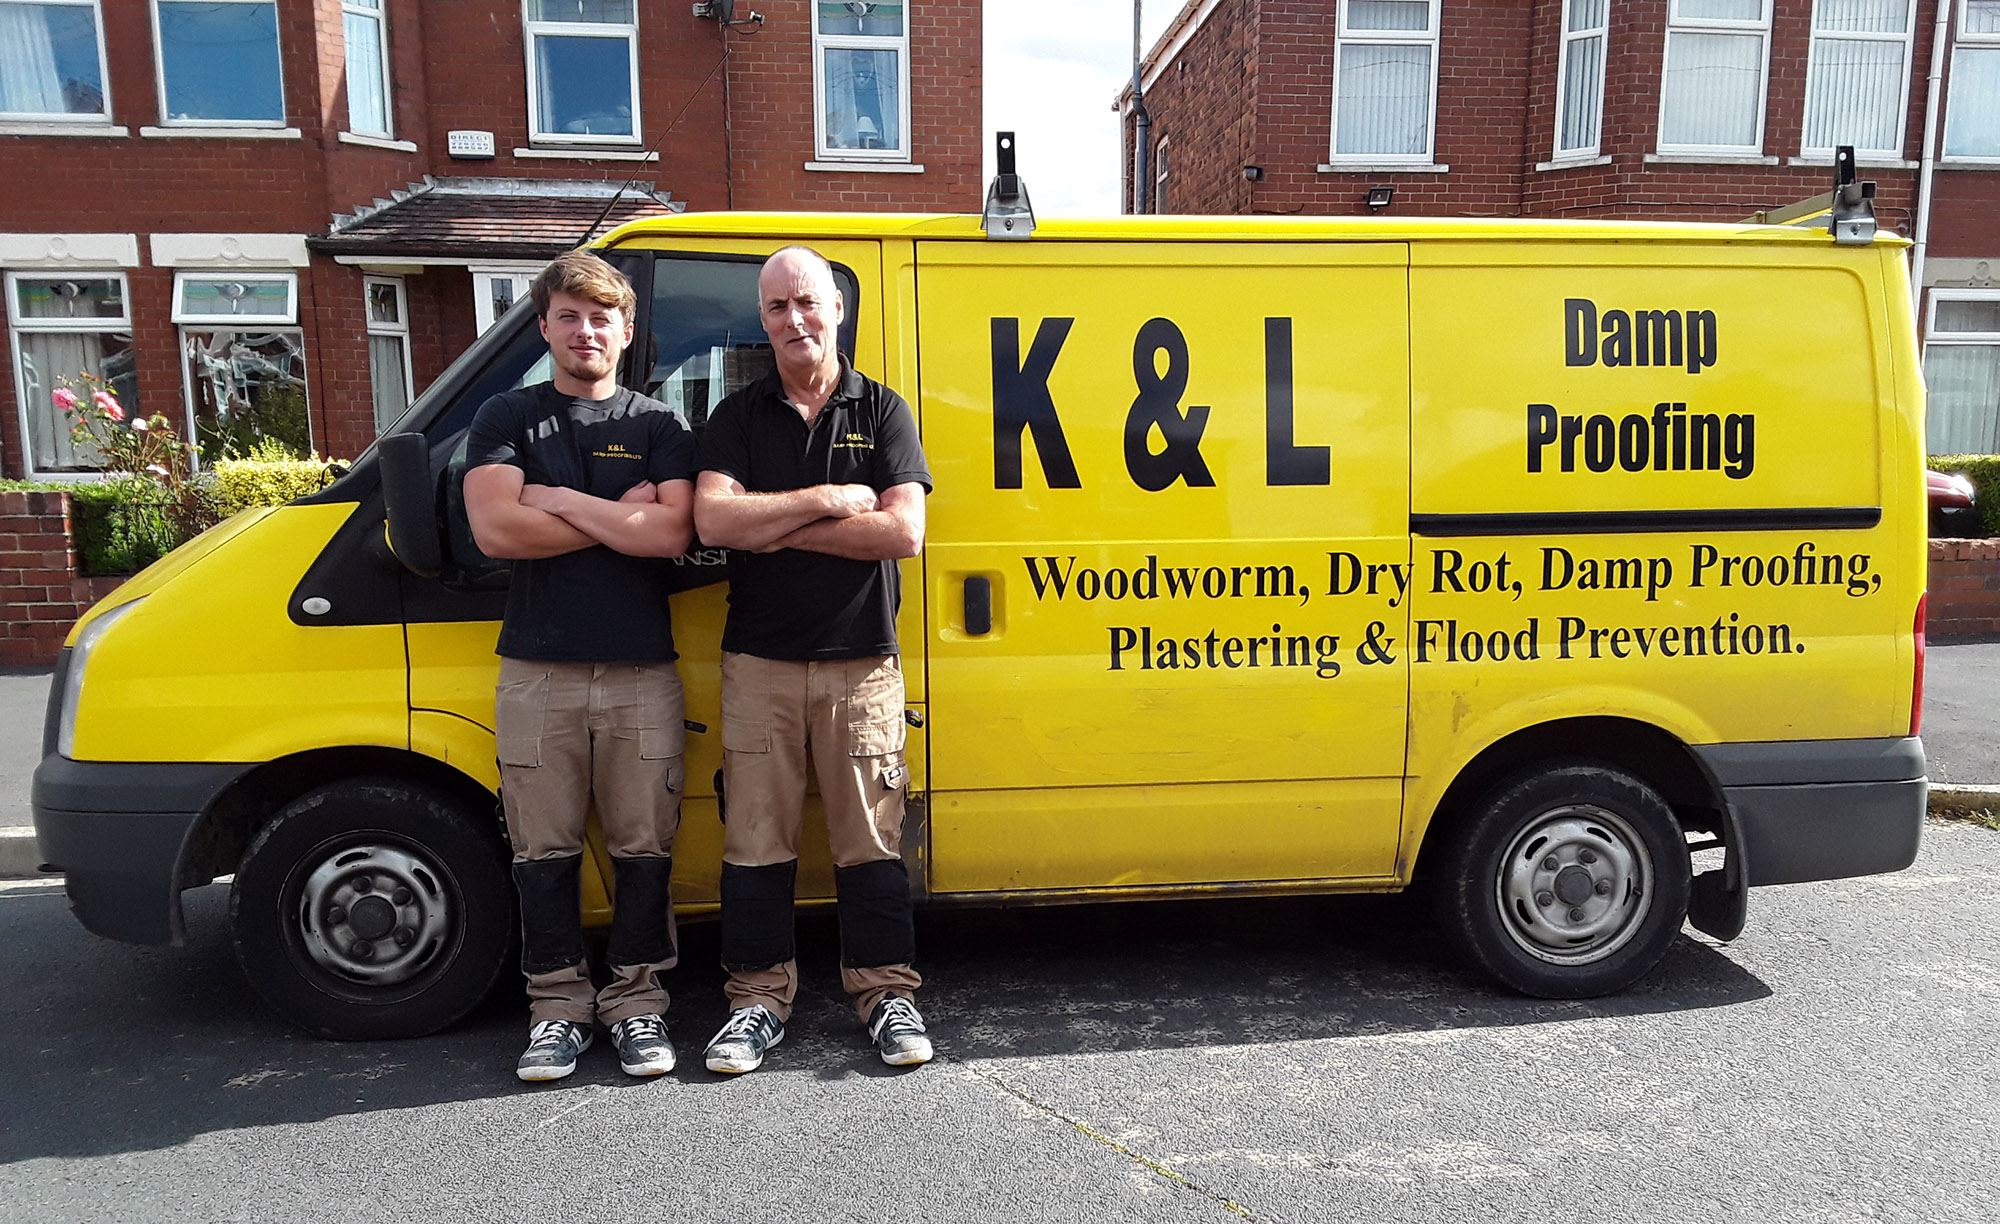 Workers standing next to K&L van